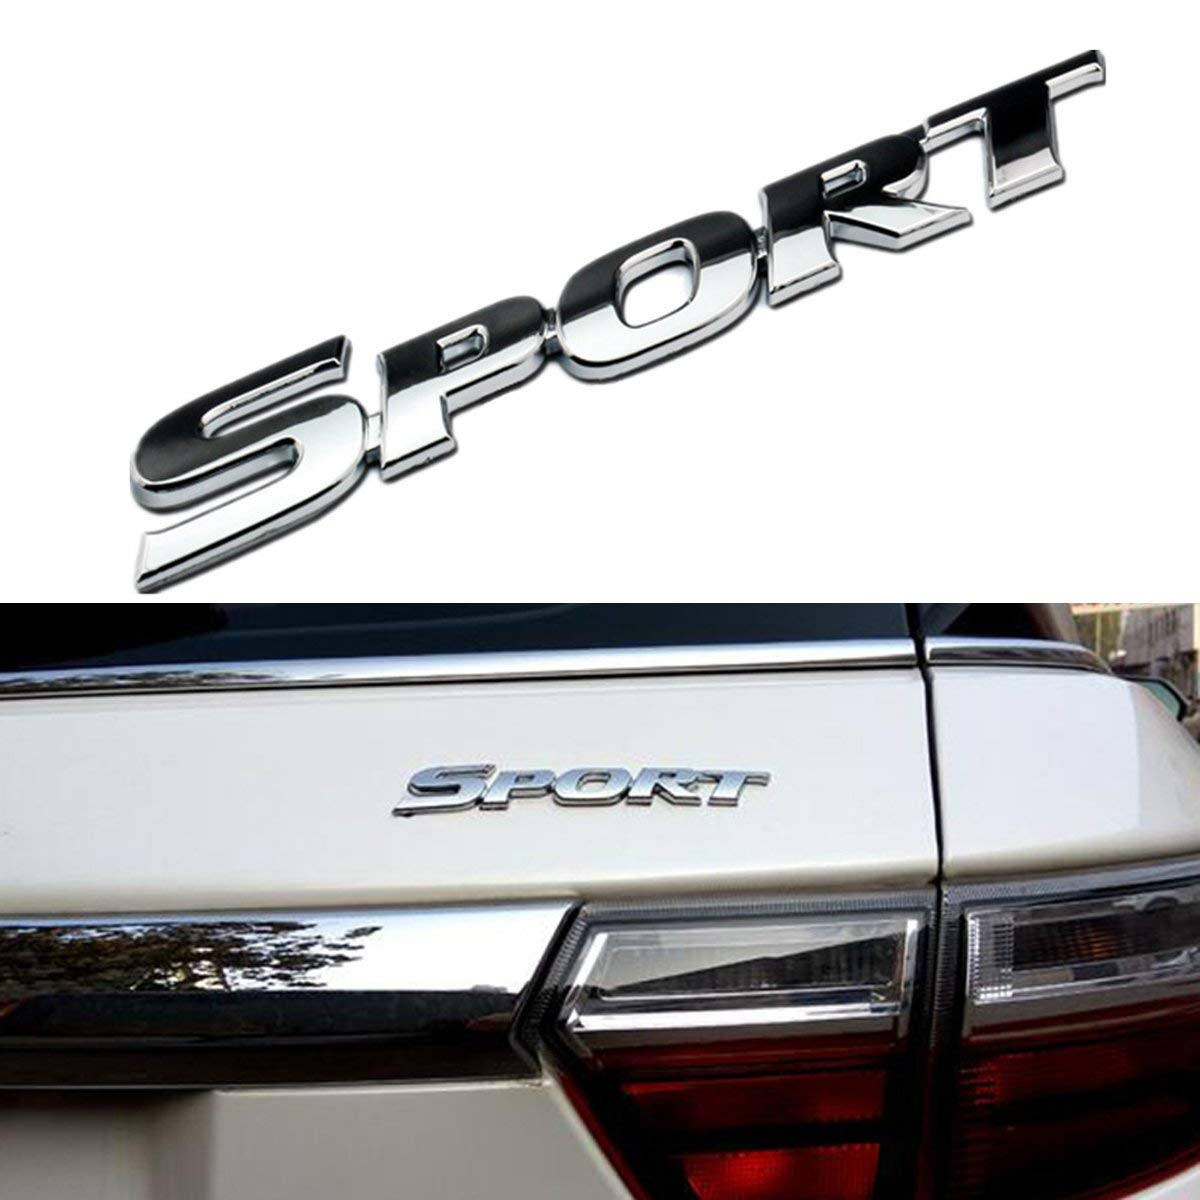 Boot Orthodox black Wesport 3D Metal SPORT Premium Car Side Fender Rear Trunk Emblem Badge Decals for Any Clean Flat Surface Etc Boor Body vehicle